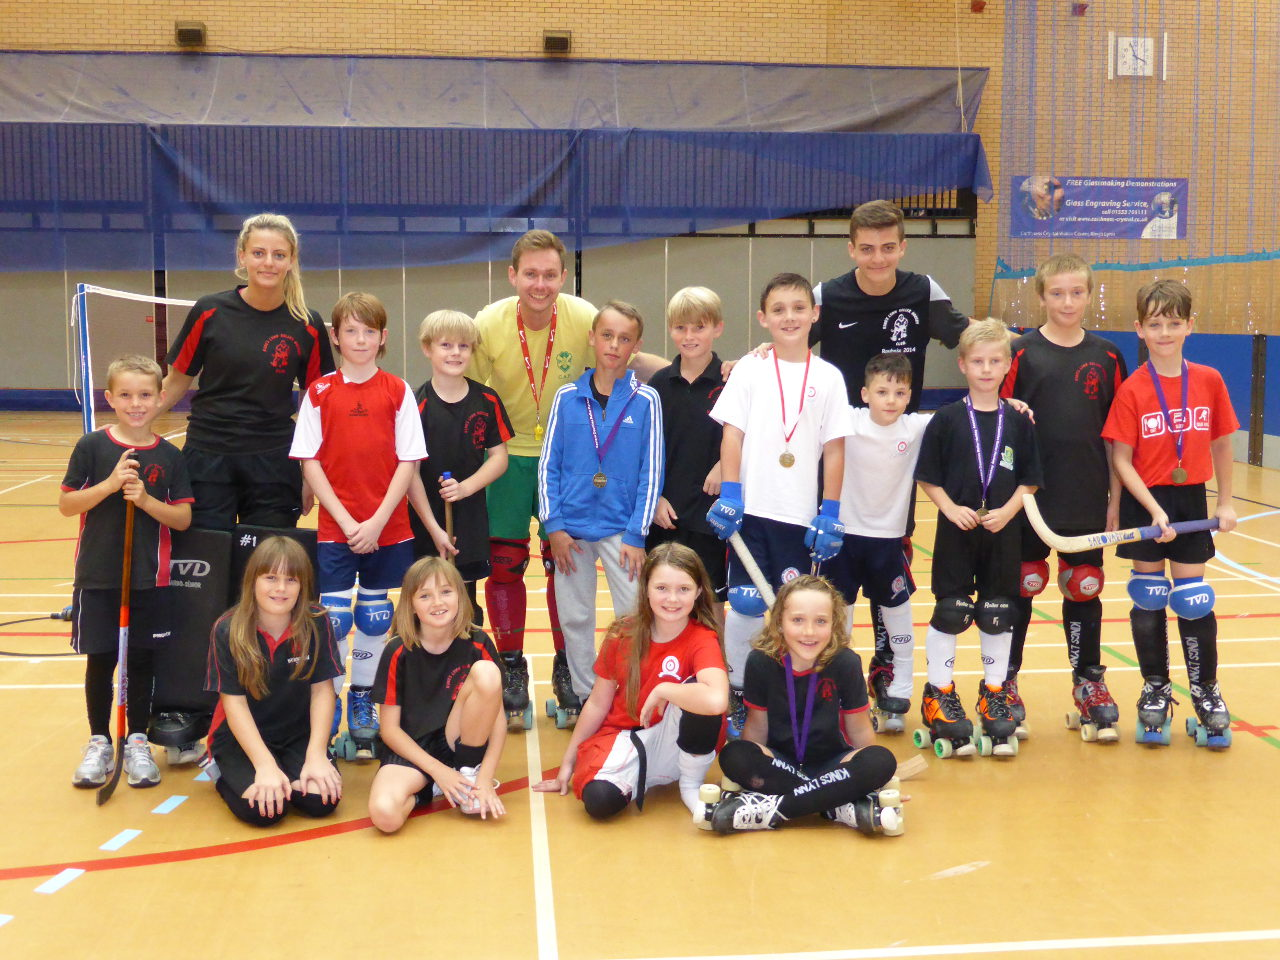 Summer Camp 2014 Players & Coaches